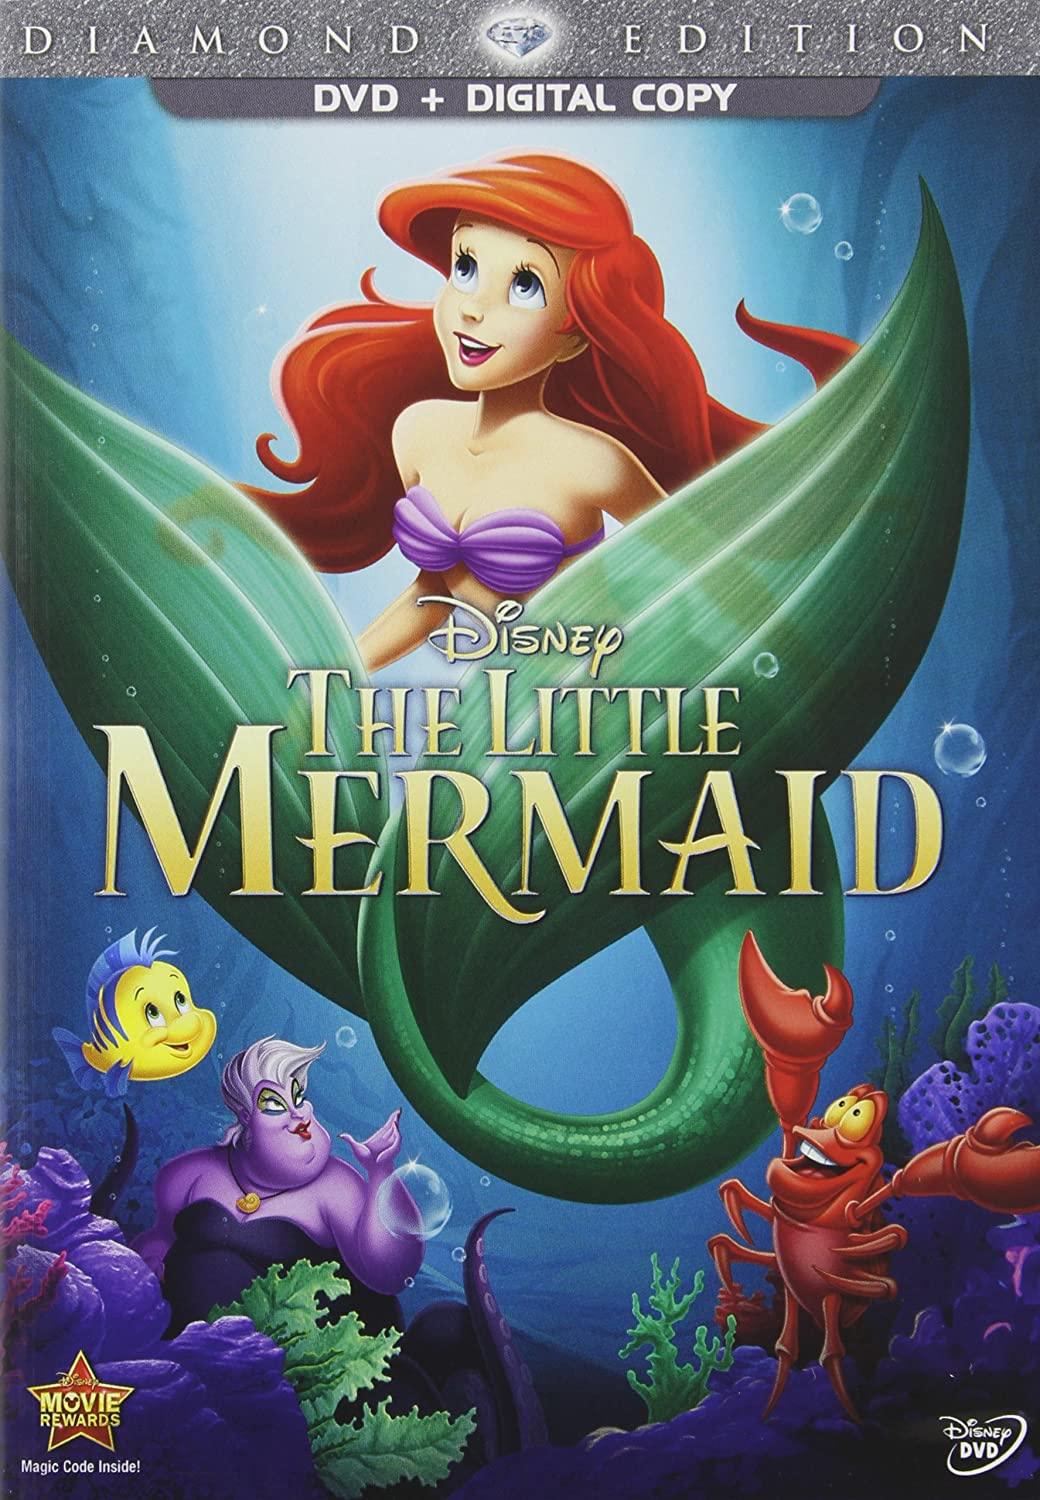 amazoncom the little mermaid diamond edition dvd digital copy rene auberjonois christopher daniel barnes jodi benson pat carroll paddi edwards